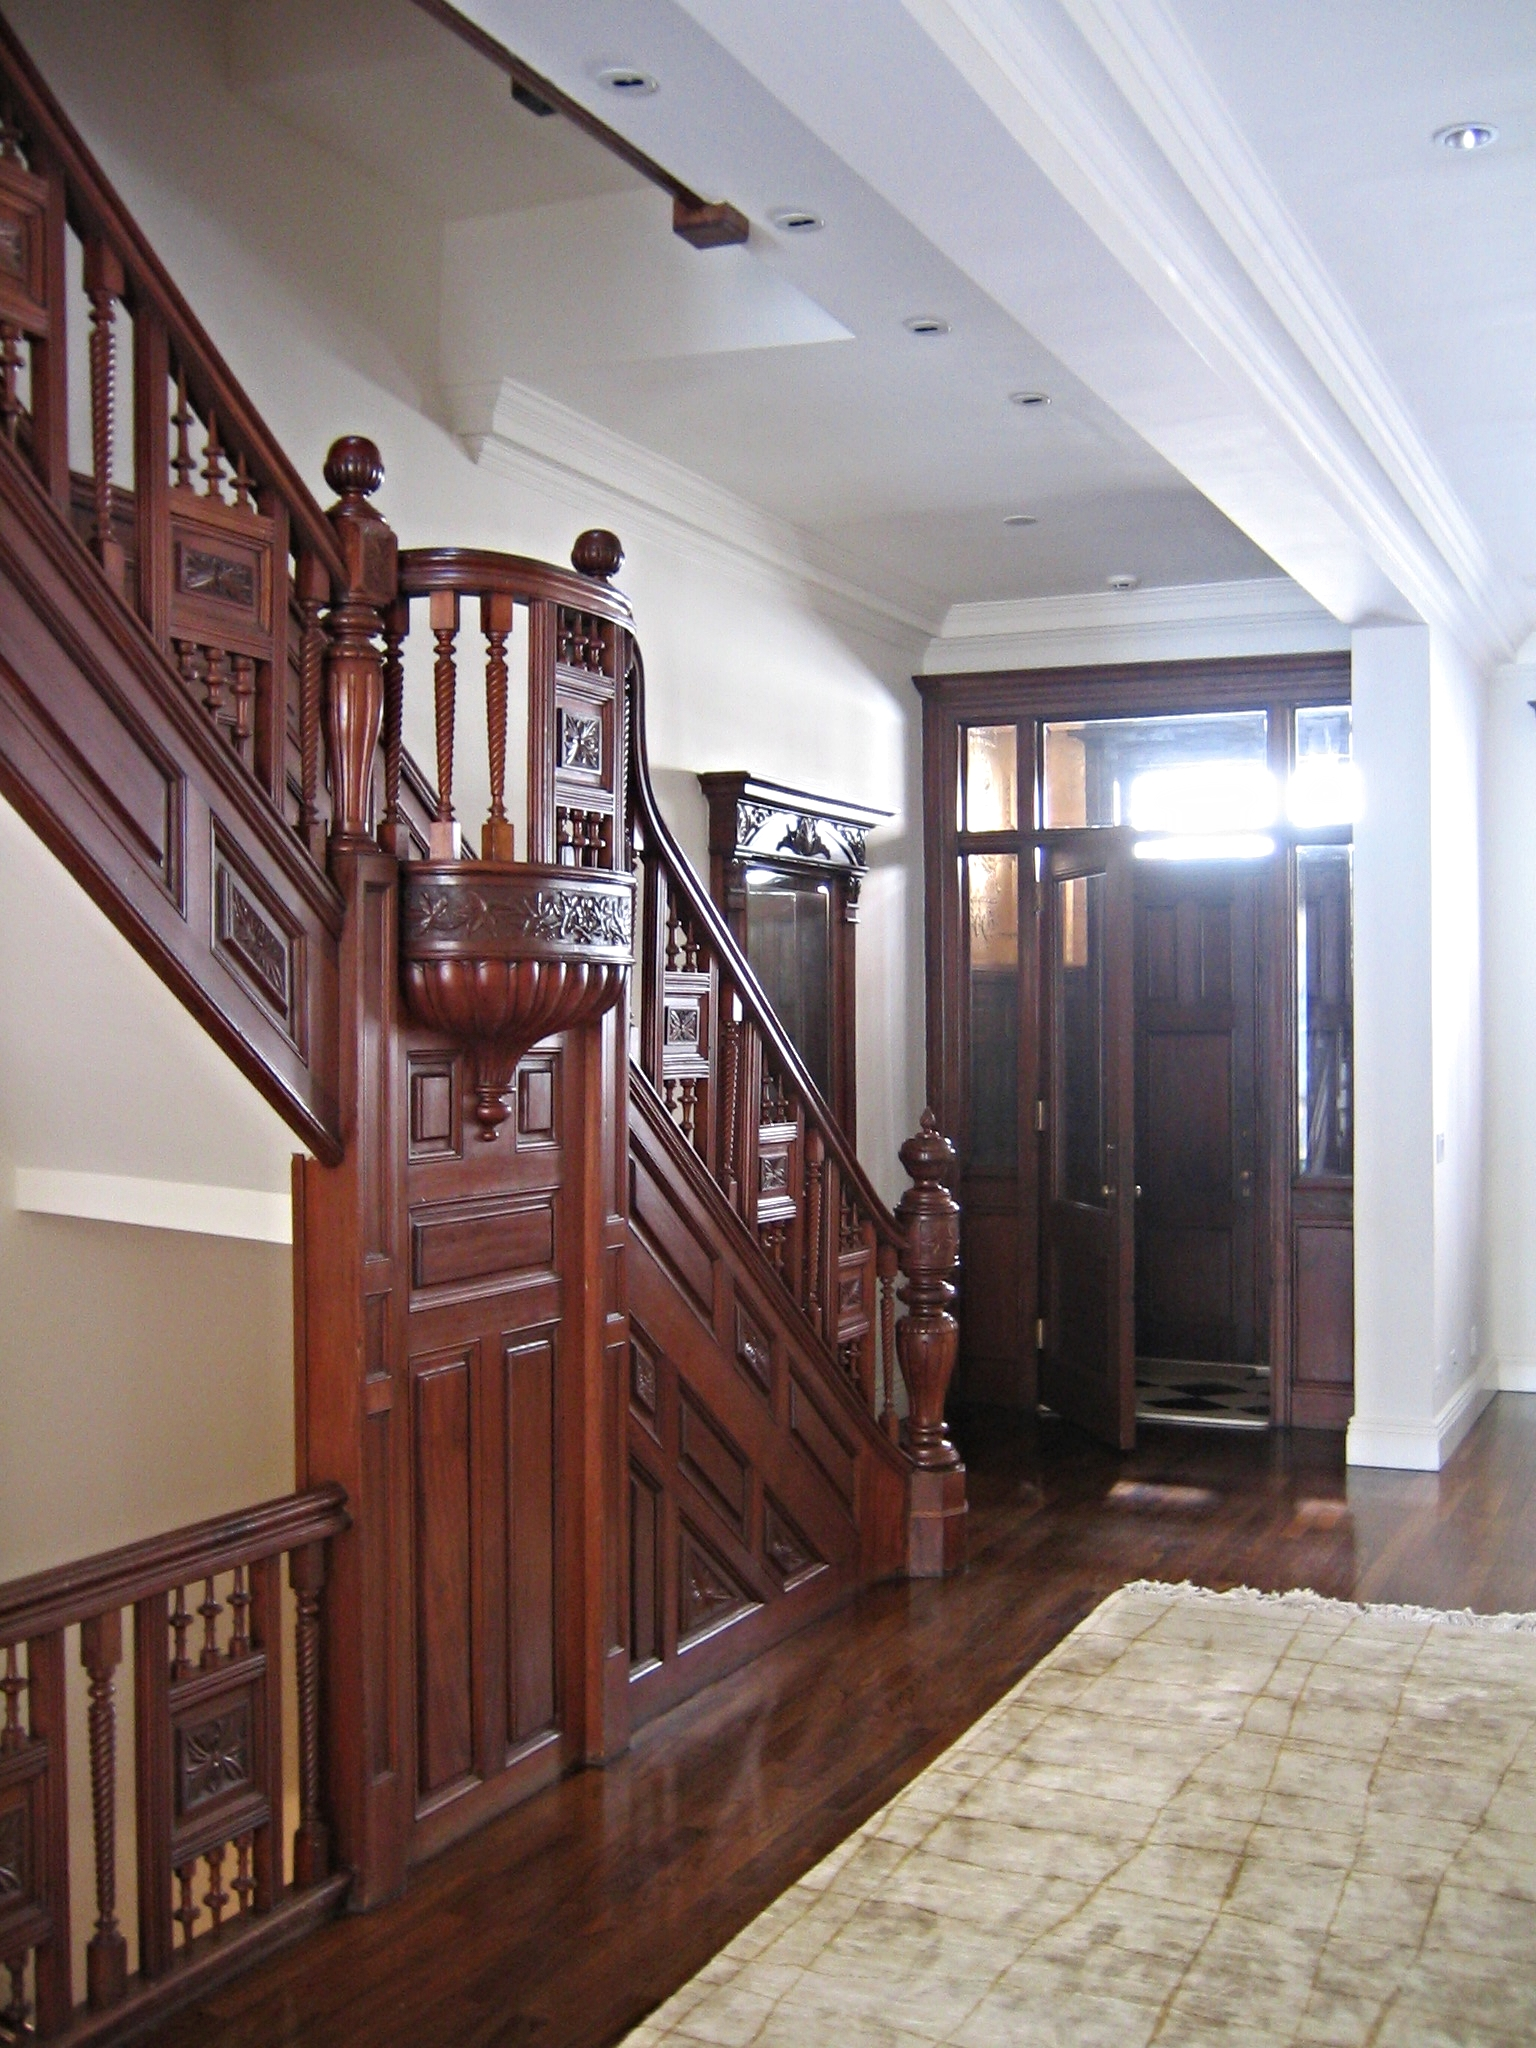 2010_ravitch townhouse - 02.jpg